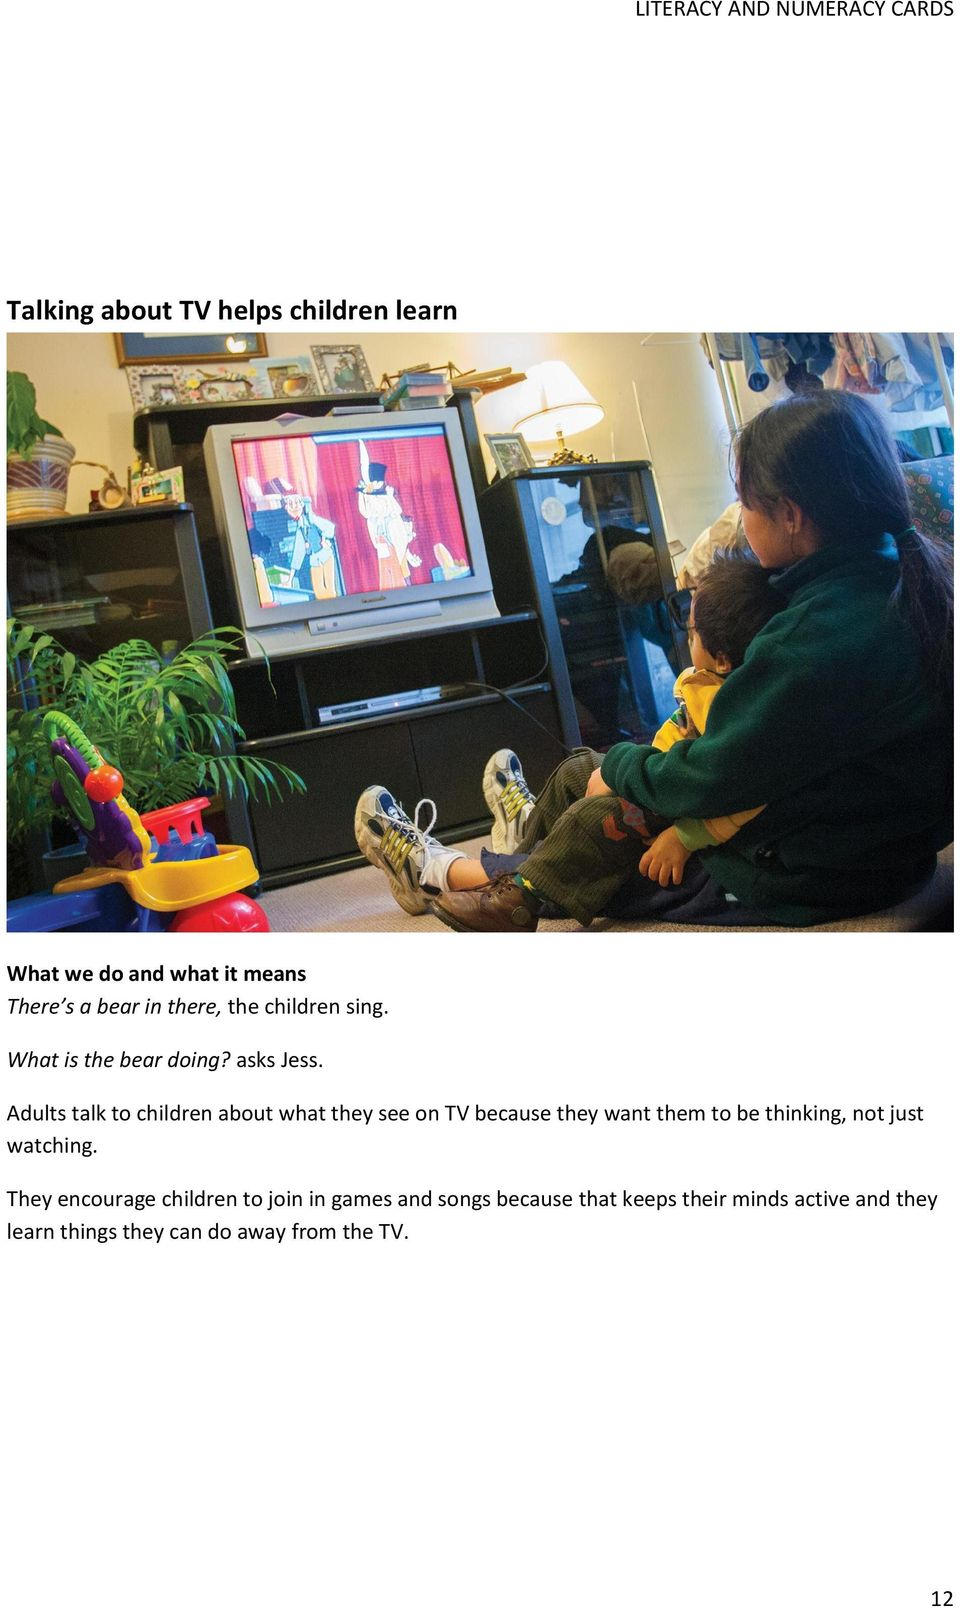 Adults talk to children about what they see on TV because they want them to be thinking,